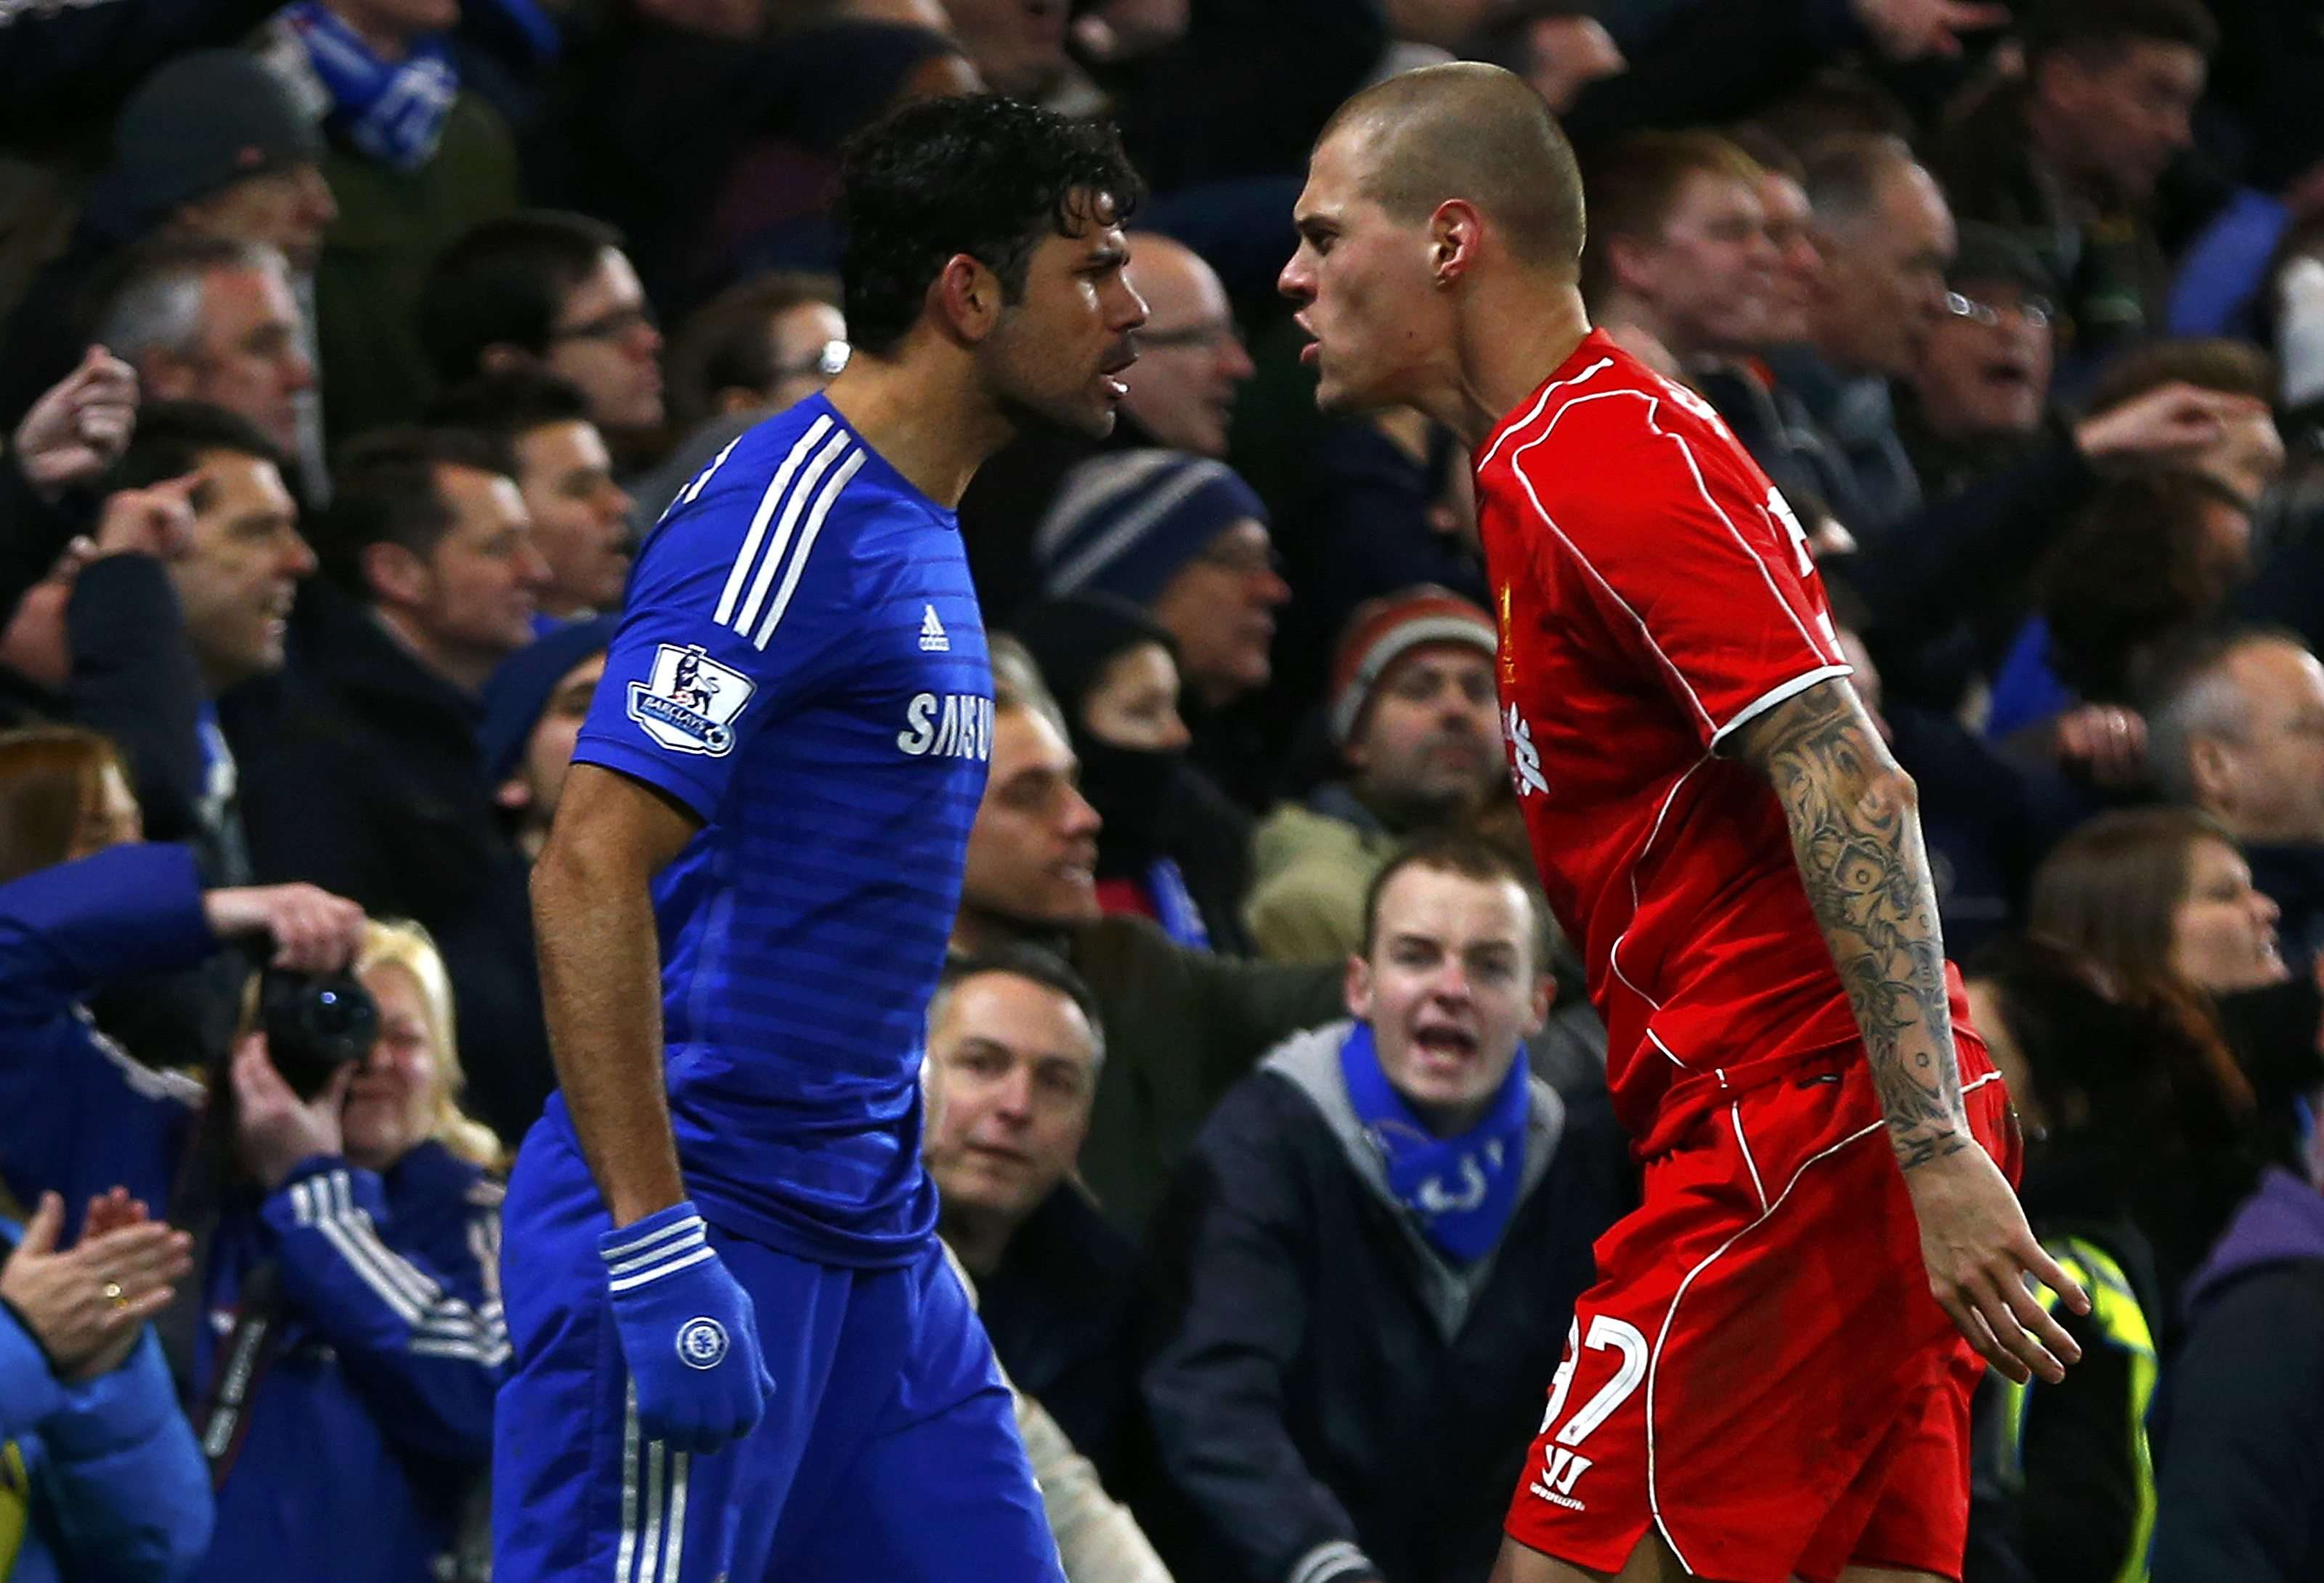 Chelsea's Diego Costa (L) and Liverpool's Martin Skrtel argue during their English League Cup semi-final second leg soccer match at Stamford Bridge in London January 27, 2015. REUTERS/Eddie Keogh (BRITAIN - Tags: SOCCER SPORT) Foto: EDDIE KEOGH/REUTERS